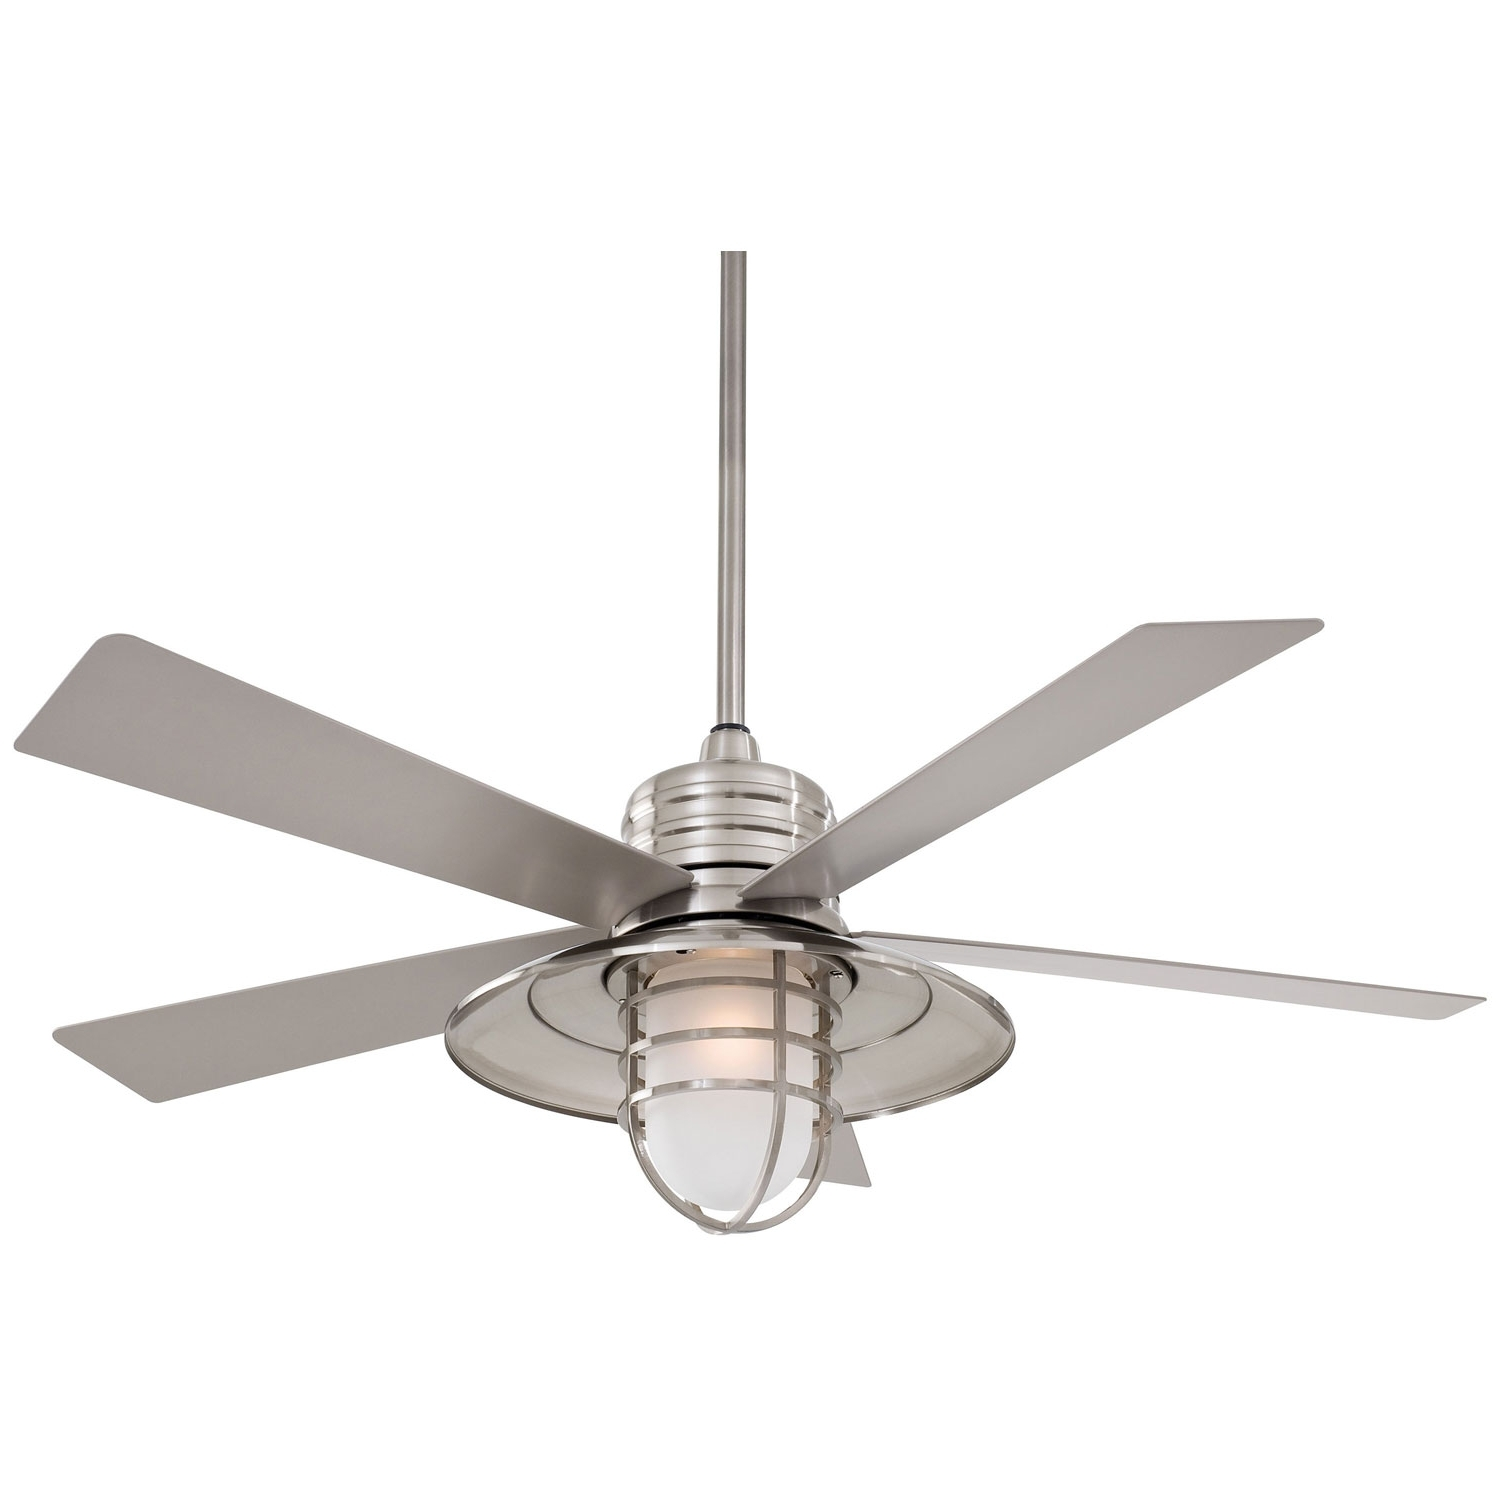 Minka Aire Rainman Brushed Nickel 54 Inch Blade Indoor/outdoor In 2019 Outdoor Ceiling Fans For Wet Areas (View 8 of 20)